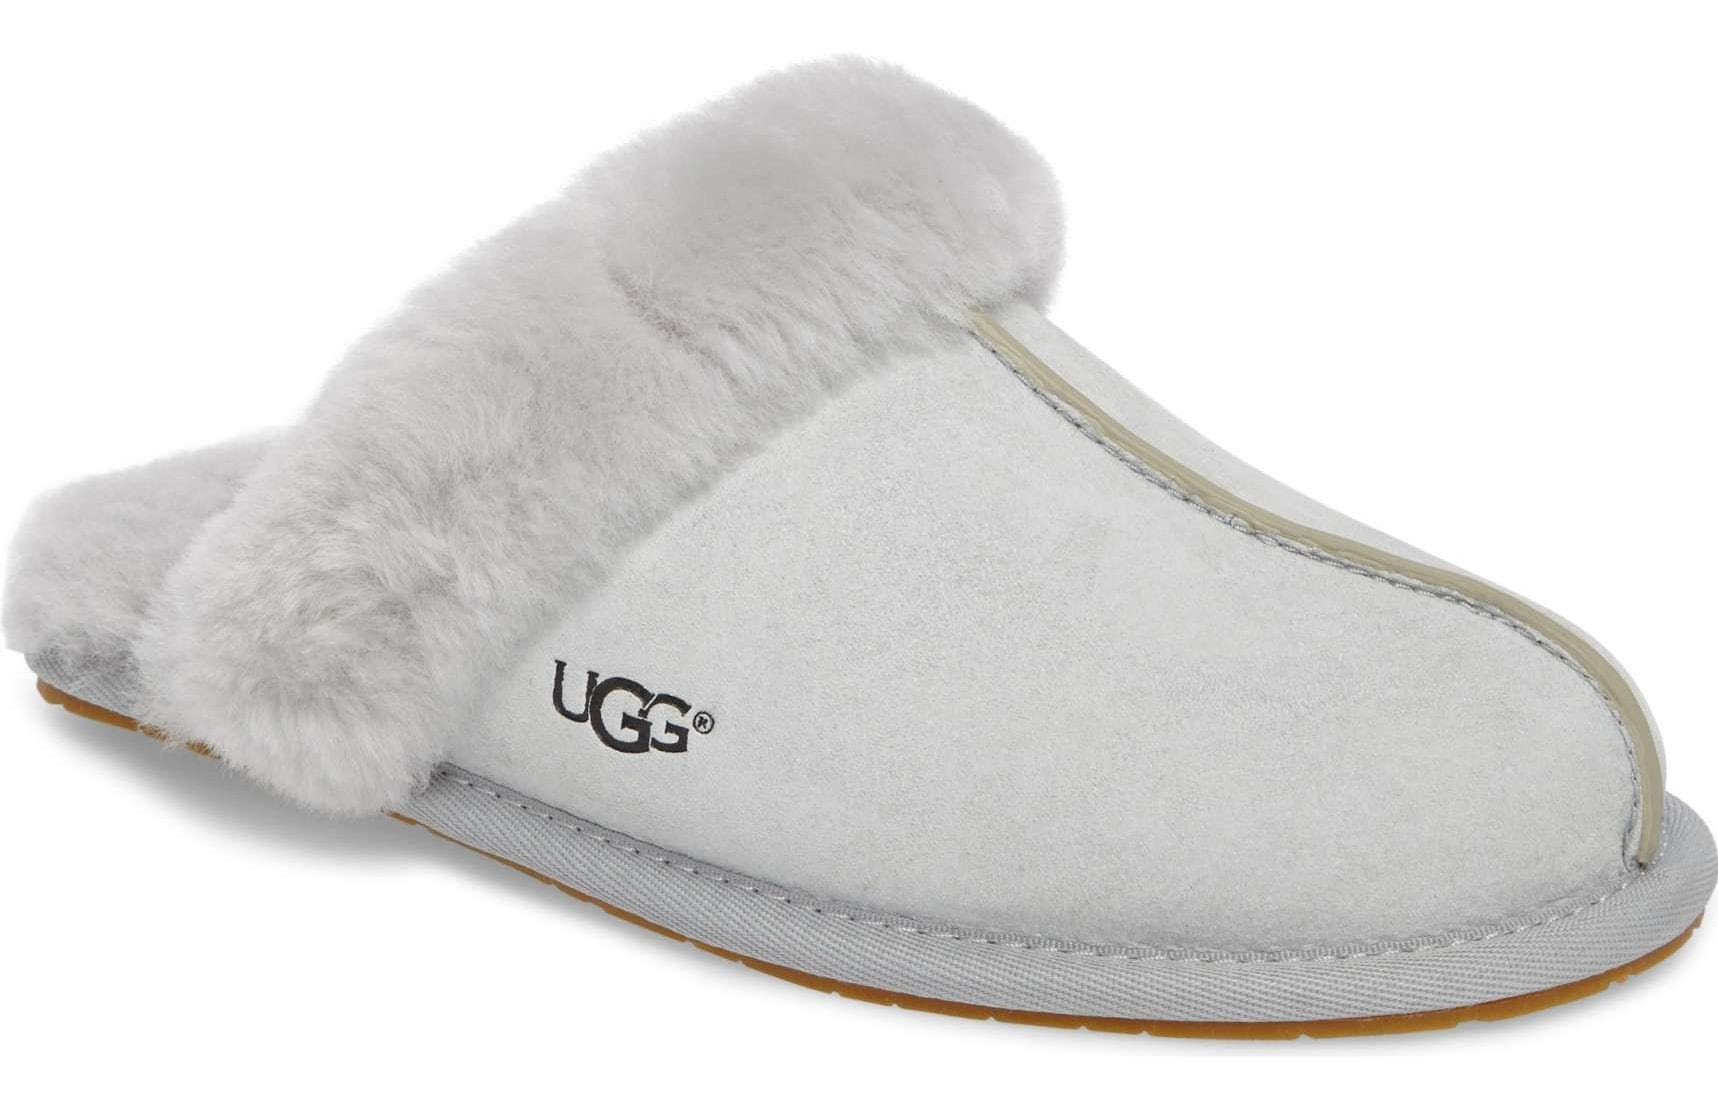 86b9b08f905c Christmas Gift for Wife 2017  Grey Ugg Slippers For Her 2018